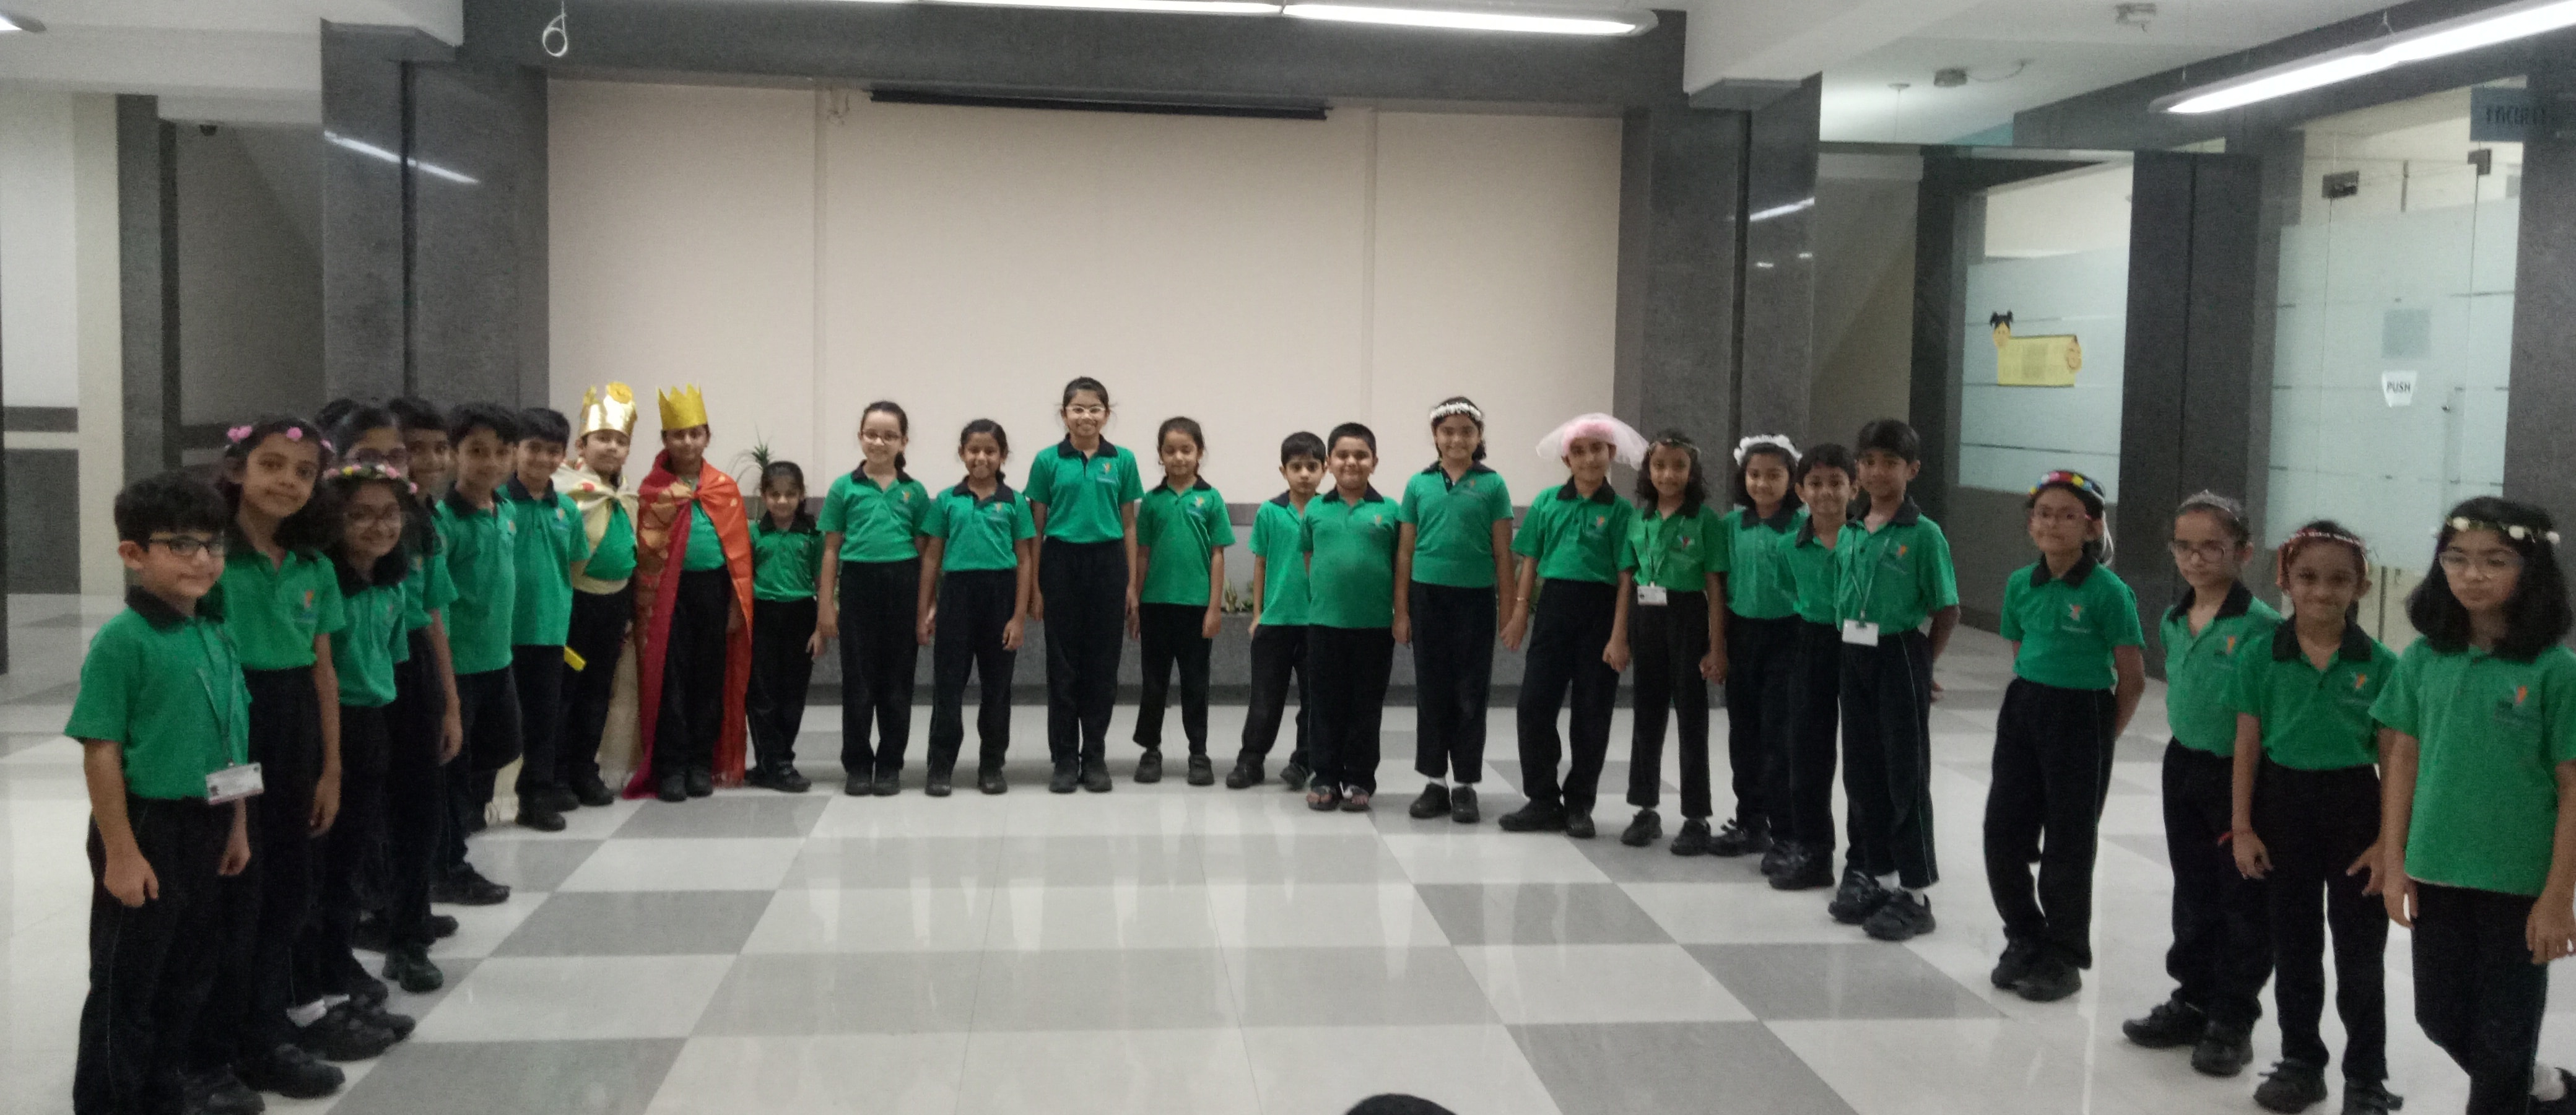 Grade 3A Assembly - The Promise